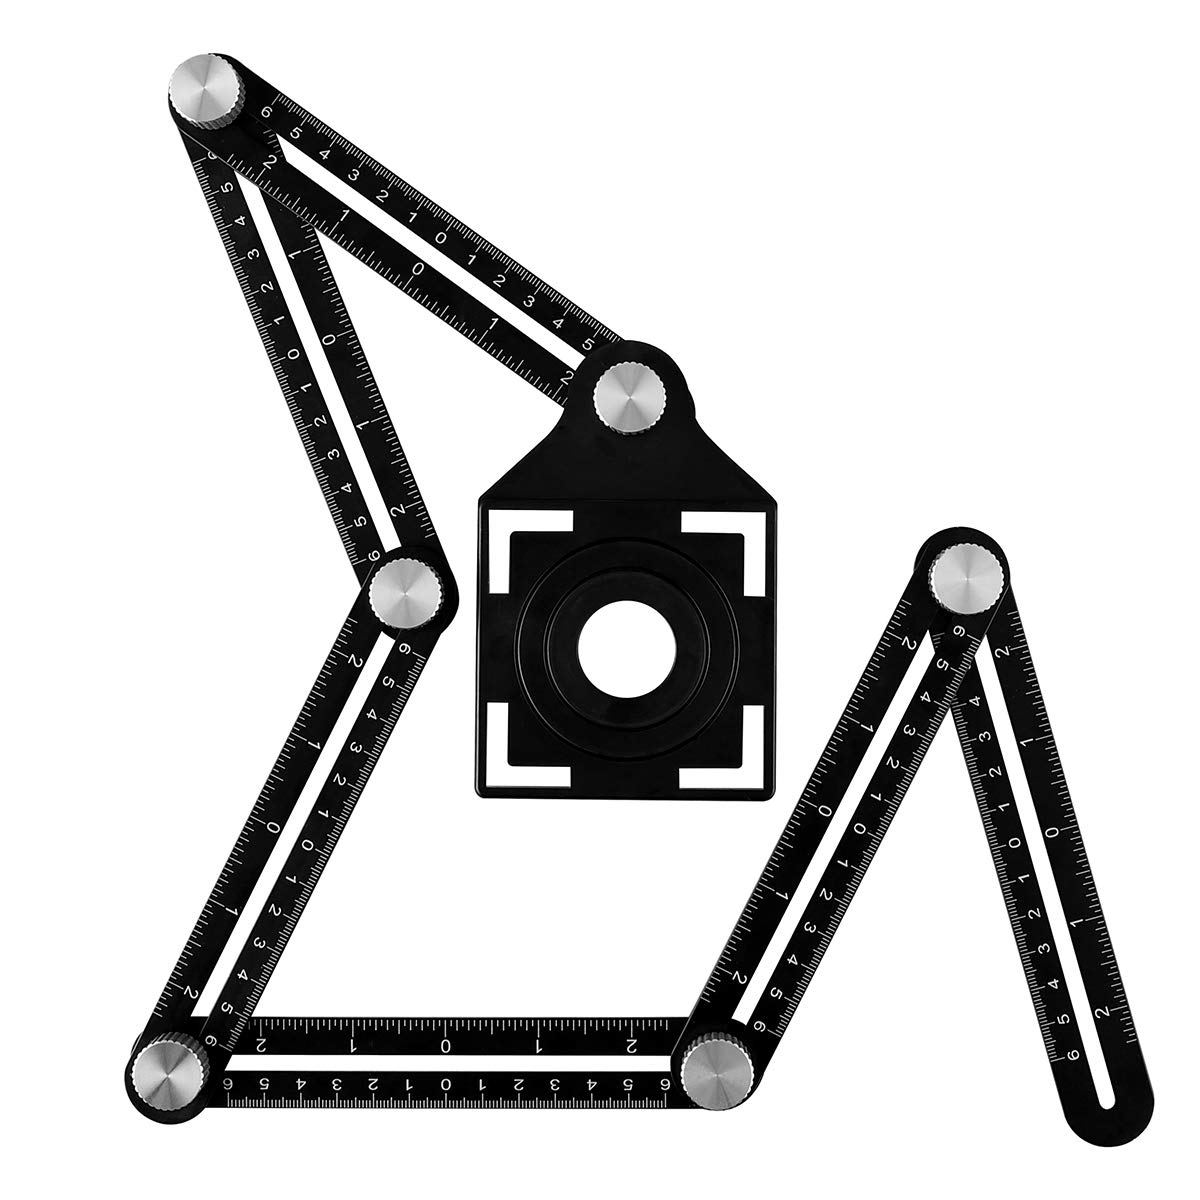 4-Sided Angle Template Tool Aluminum Alloy with Drill Guide Locator for Carpenters Updated Version Hobbyists Builders Angle Measuring Ruler